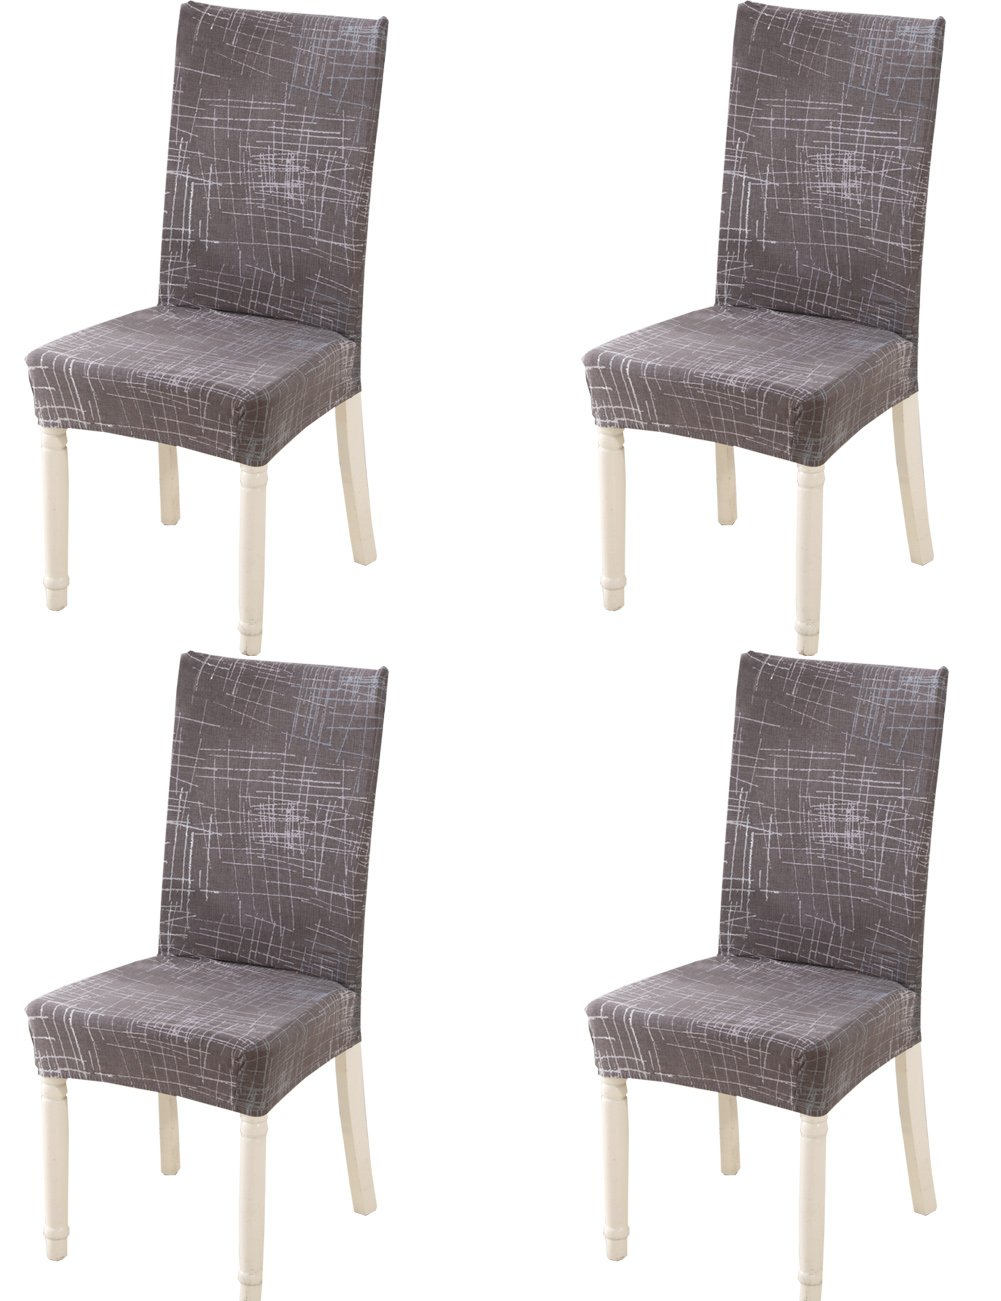 Chair Cover for Dining Chairs 4 Pieces Modern Print Stretch Wedding Seat Cover Dining Stool Chair Slipcovers (A) HengAi Style